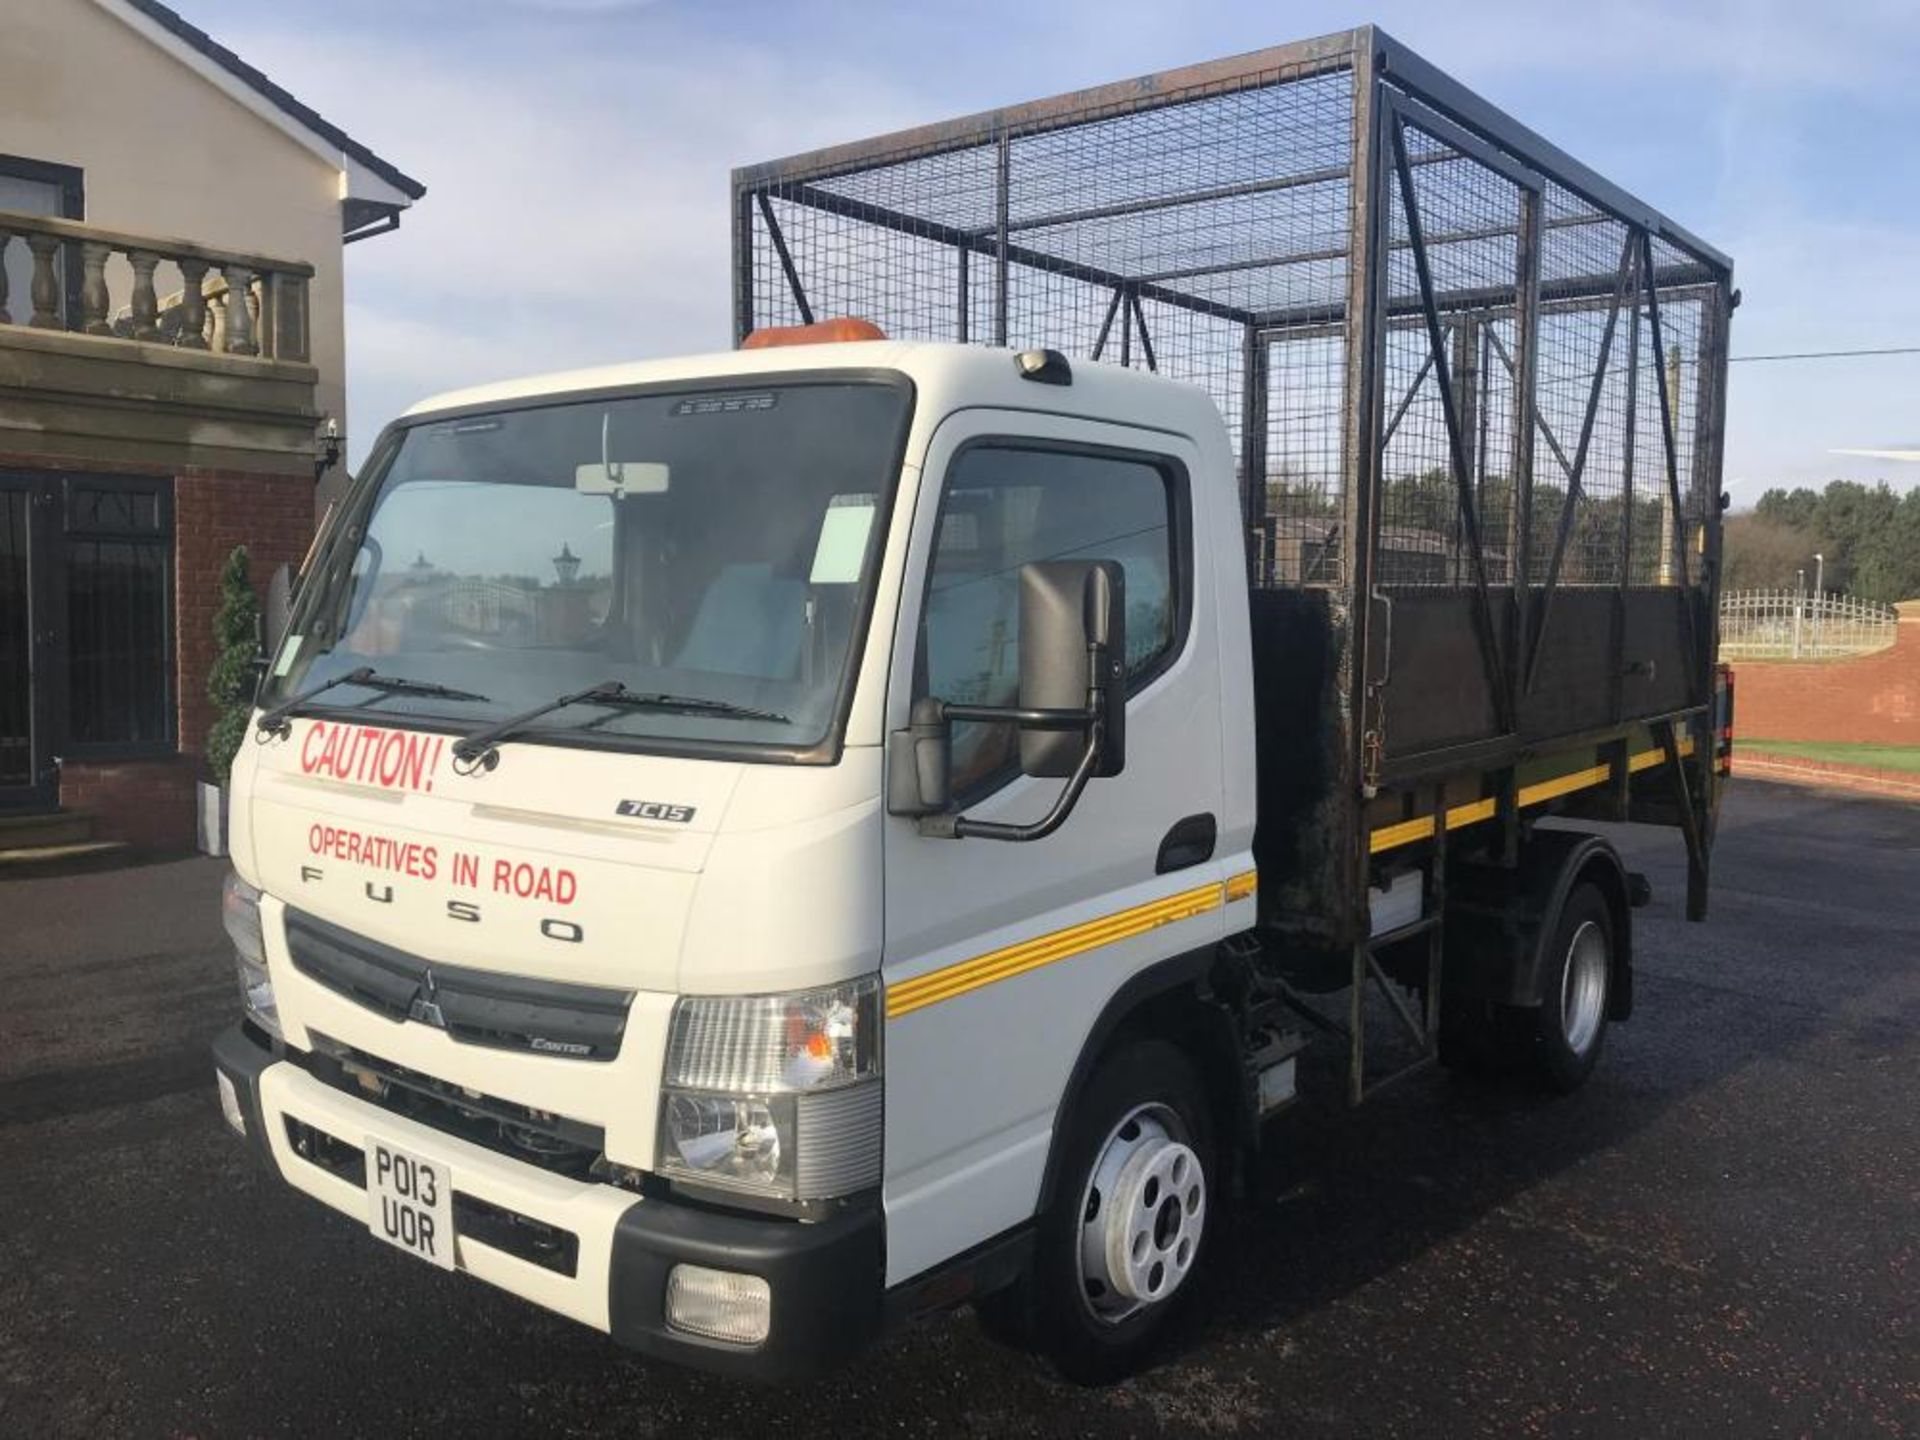 Lot 94 - 2013/13 REG MITSUBISHI FUSO CANTER 7C15 28 WHITE DIESEL CAGED TIPPER TRUCK, SHOWING 0 FORMER KEEPERS